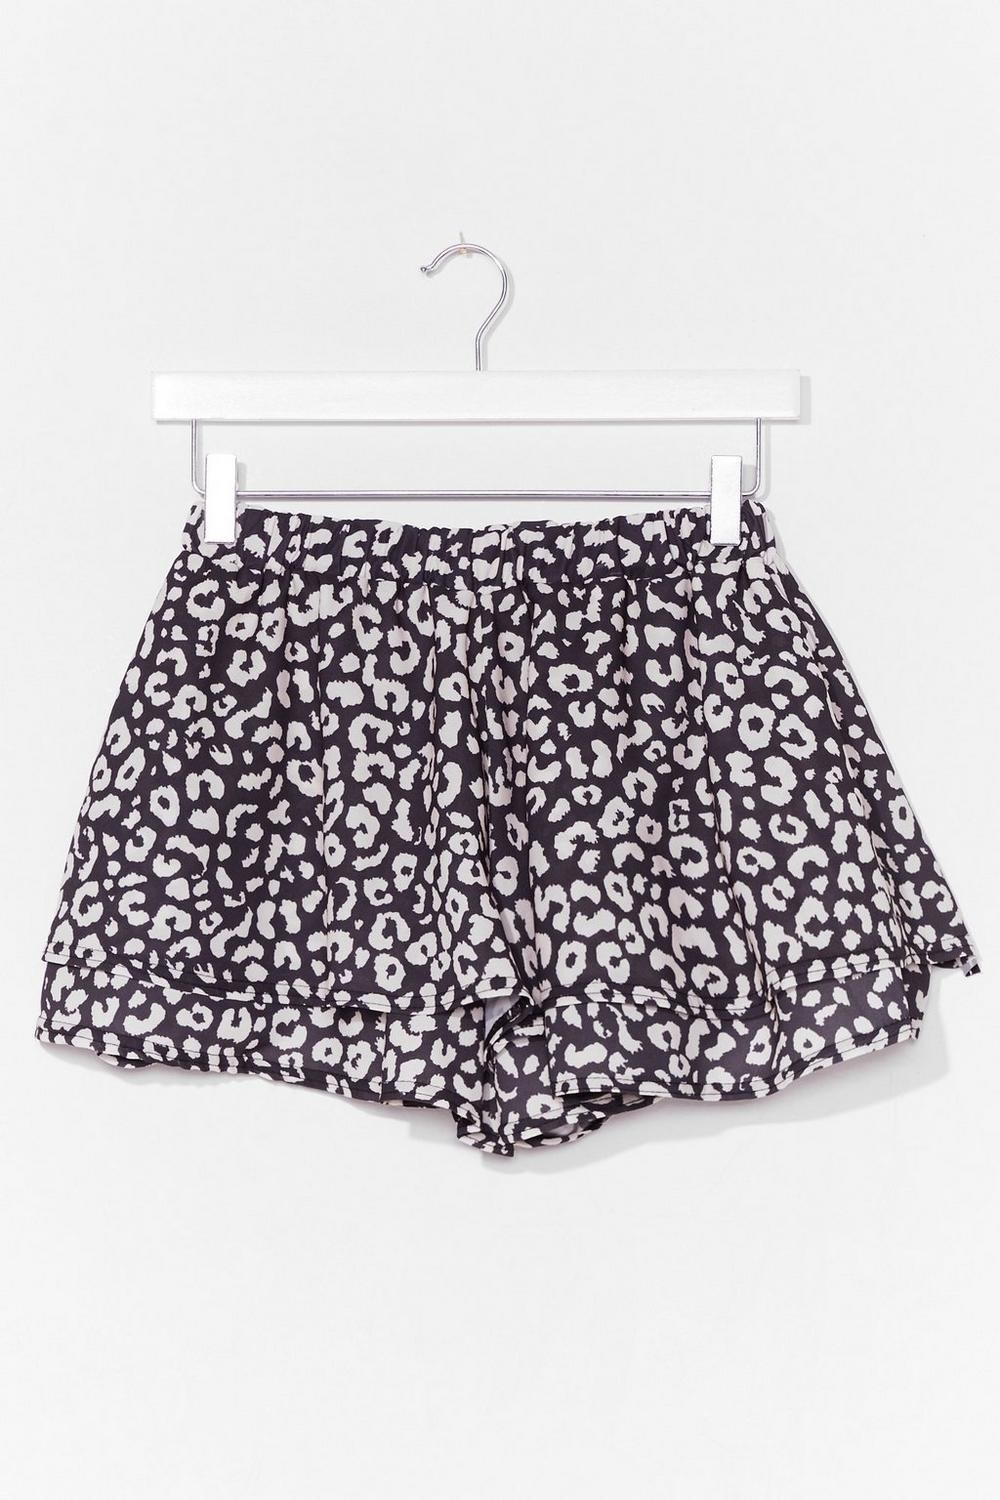 a pair of ruffled black and white leopard pattern shorts on a hanger